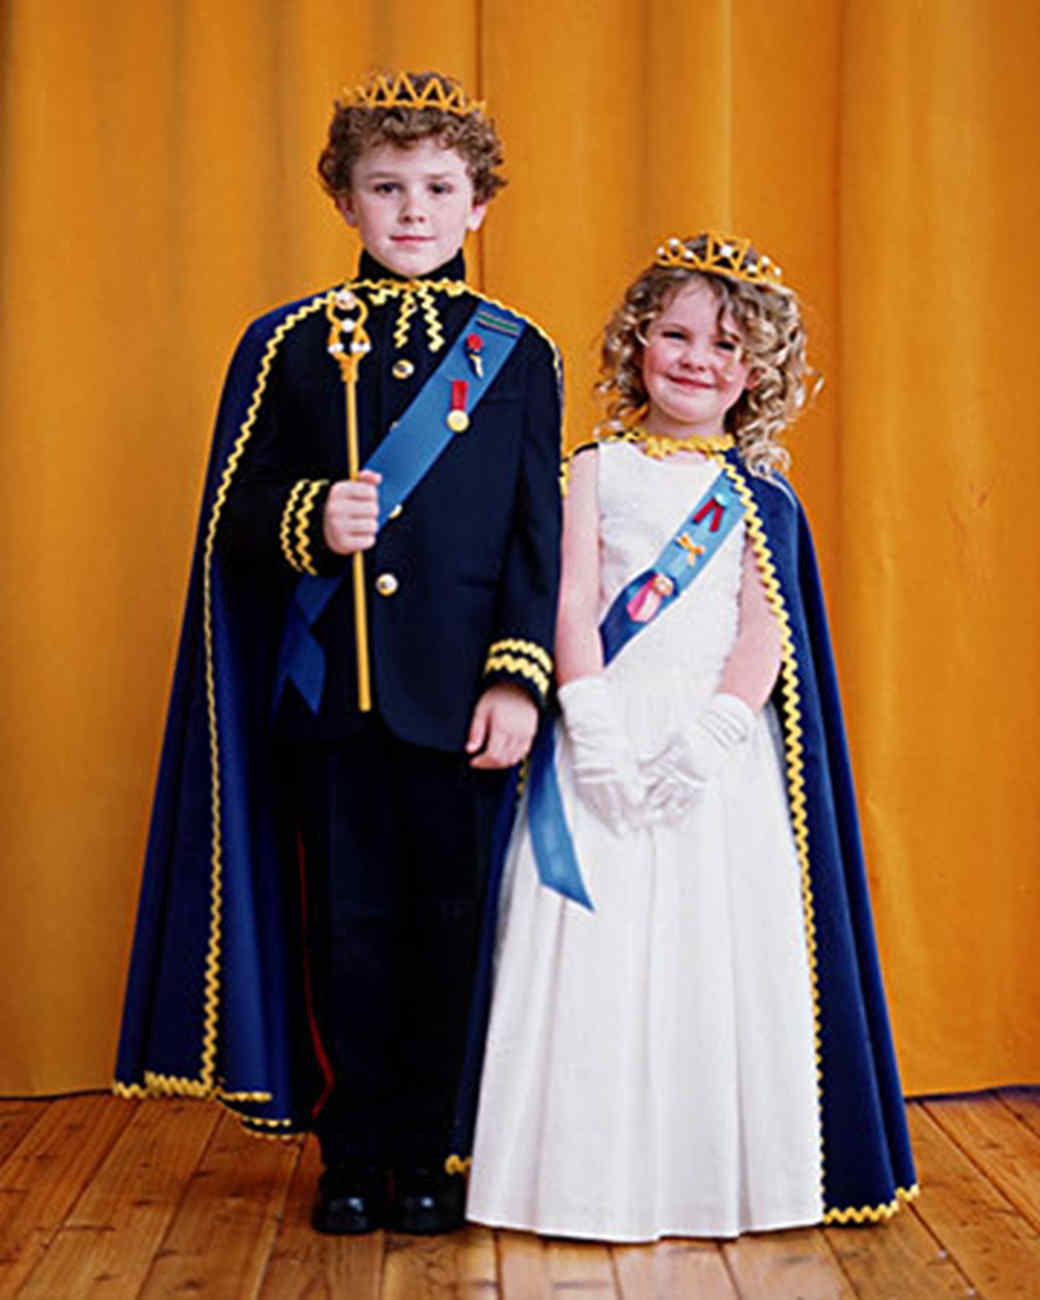 His and Her Royal Highness Costumes